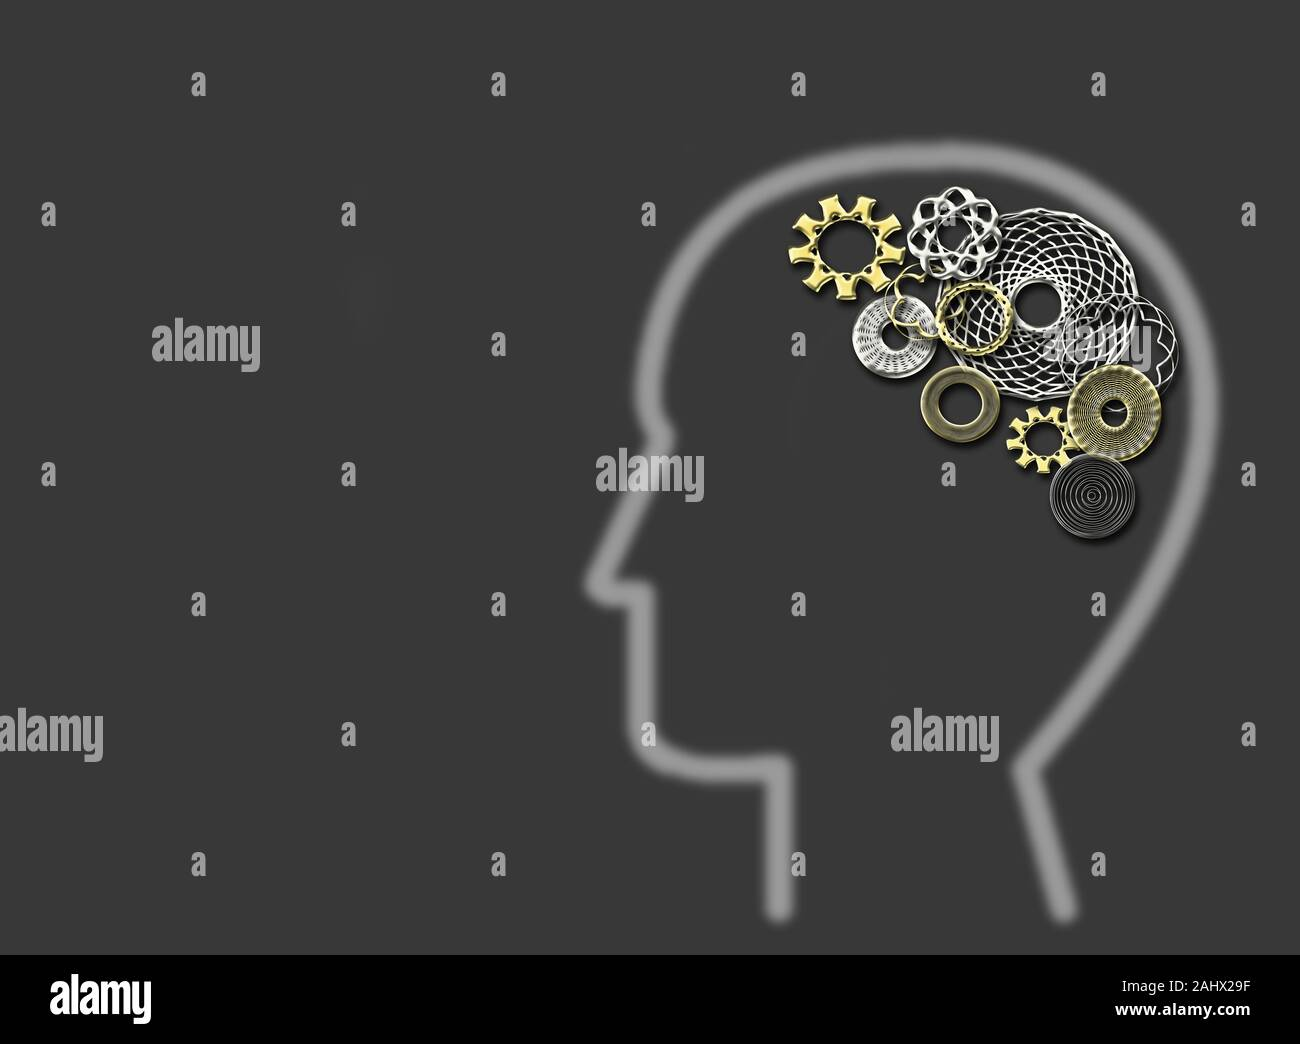 Human with gears and cogs inside showing brain activity Stock Photo